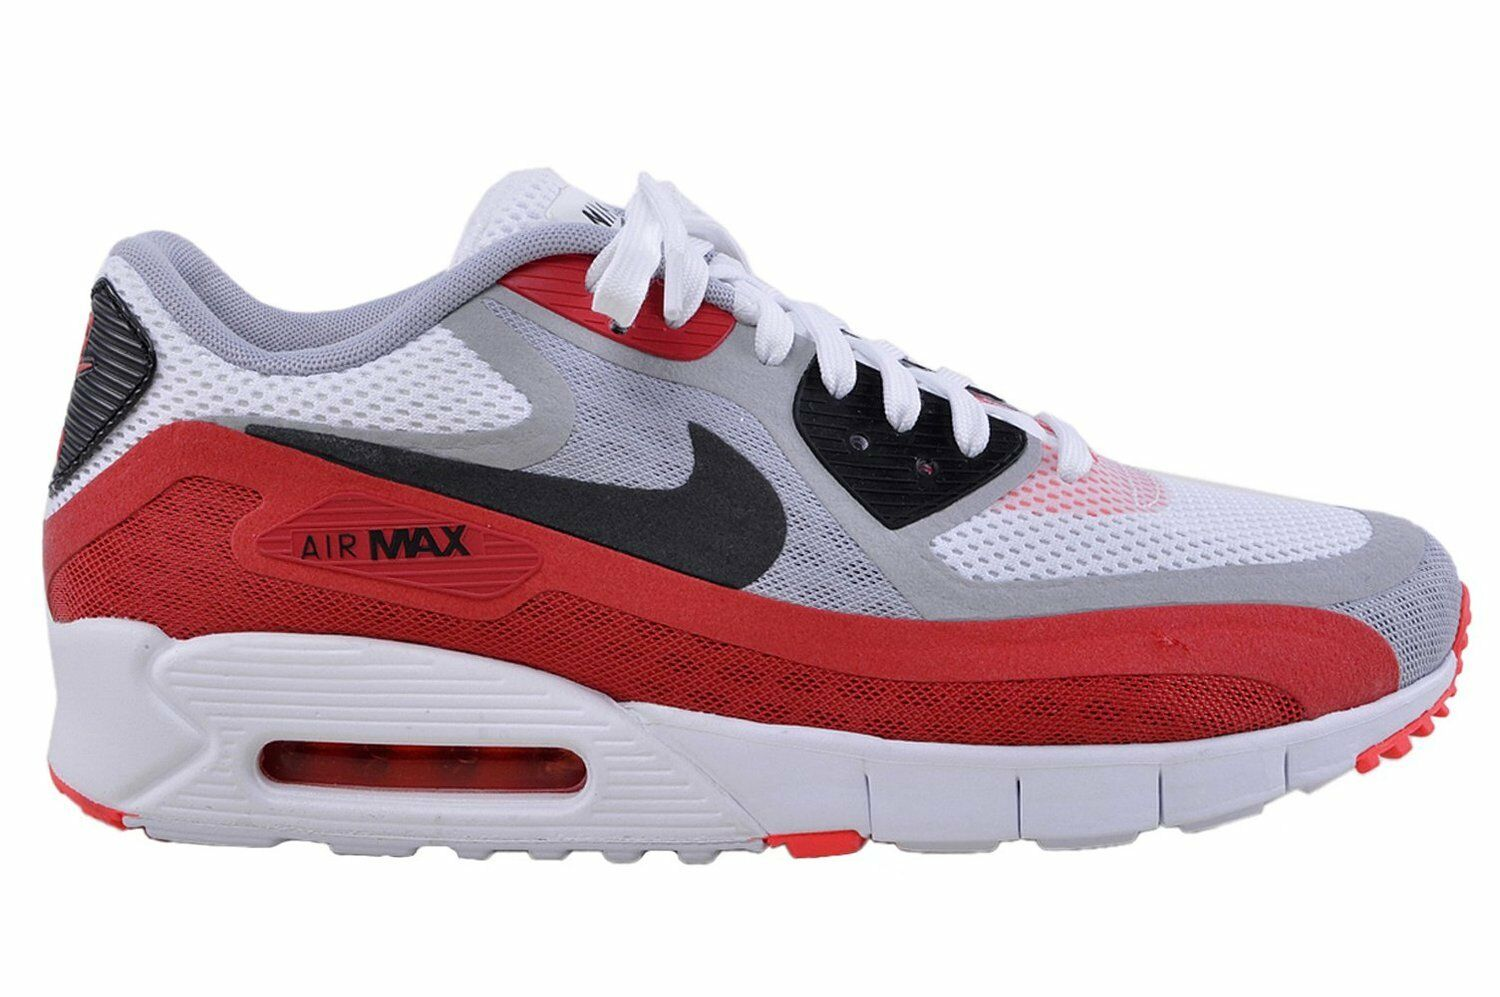 Men Nike Air Max 90 BR Gr:40 Neu Sneaker 95 97 NZ R4 Schuhe Premium One 1